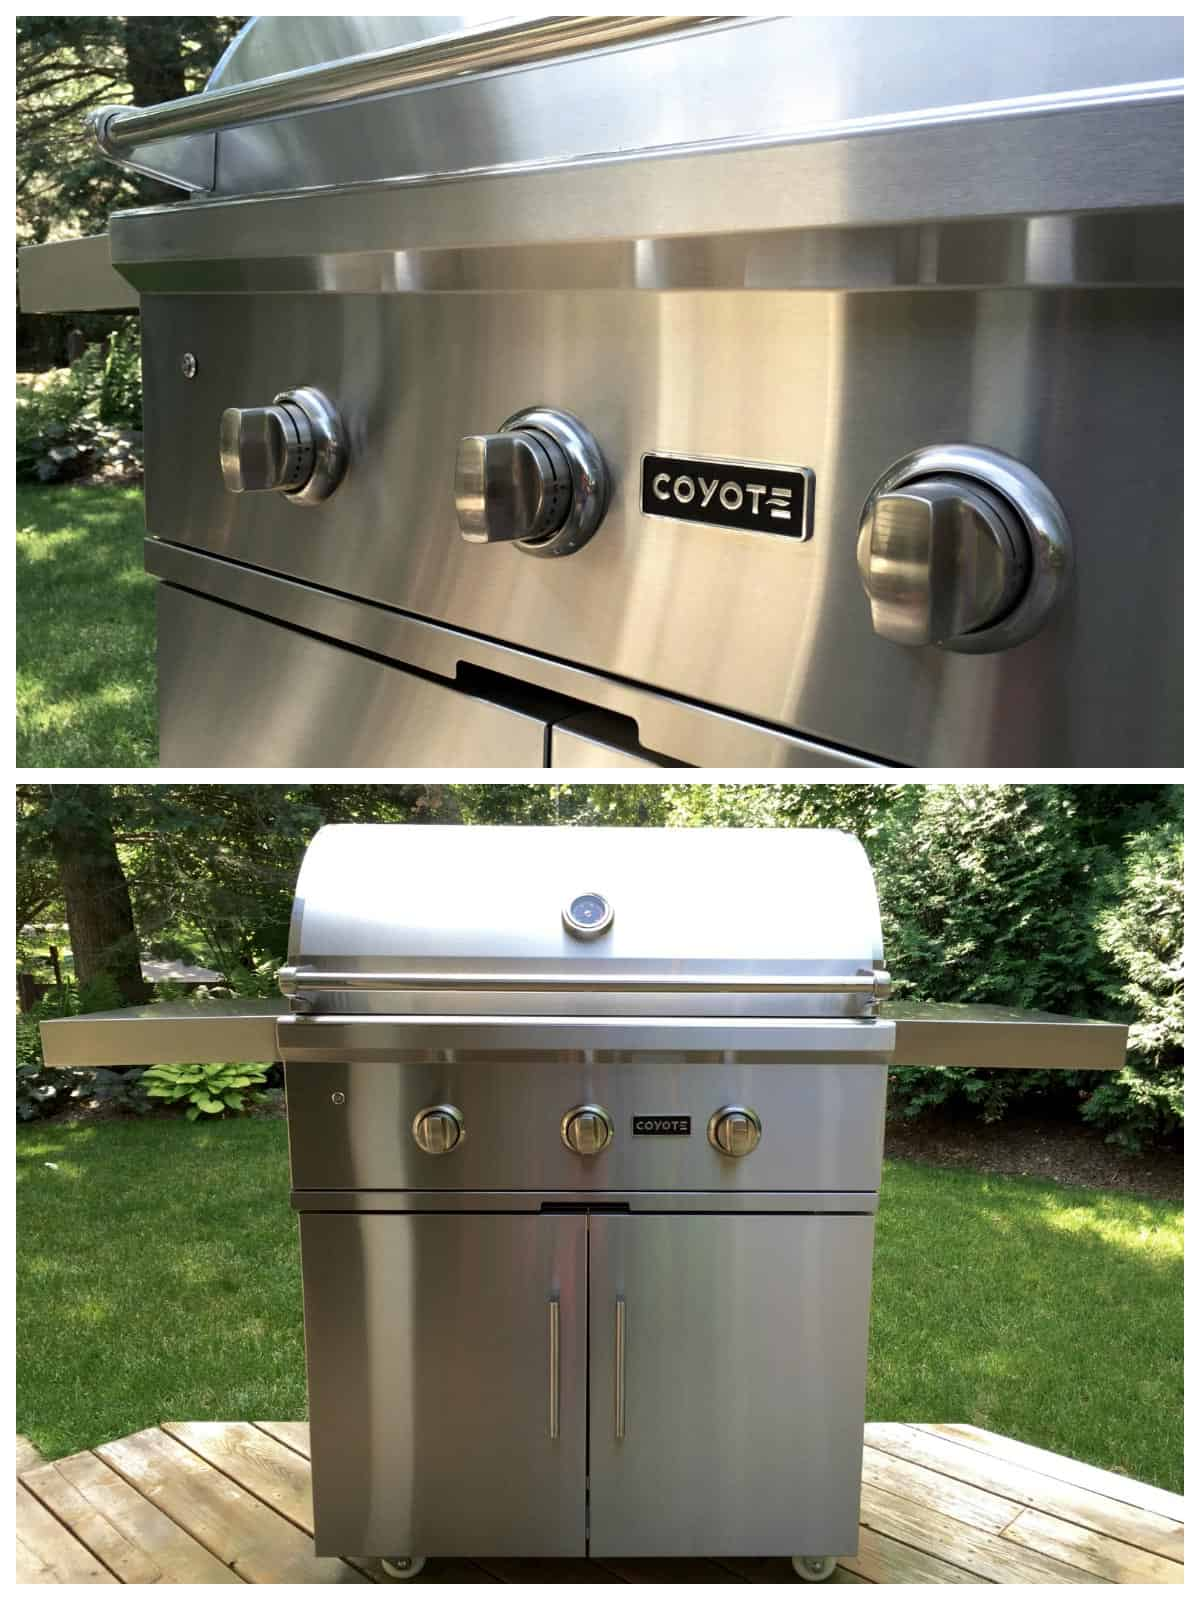 Coyote grill from Ferguson Bath, Kitchen & Lighting Gallery